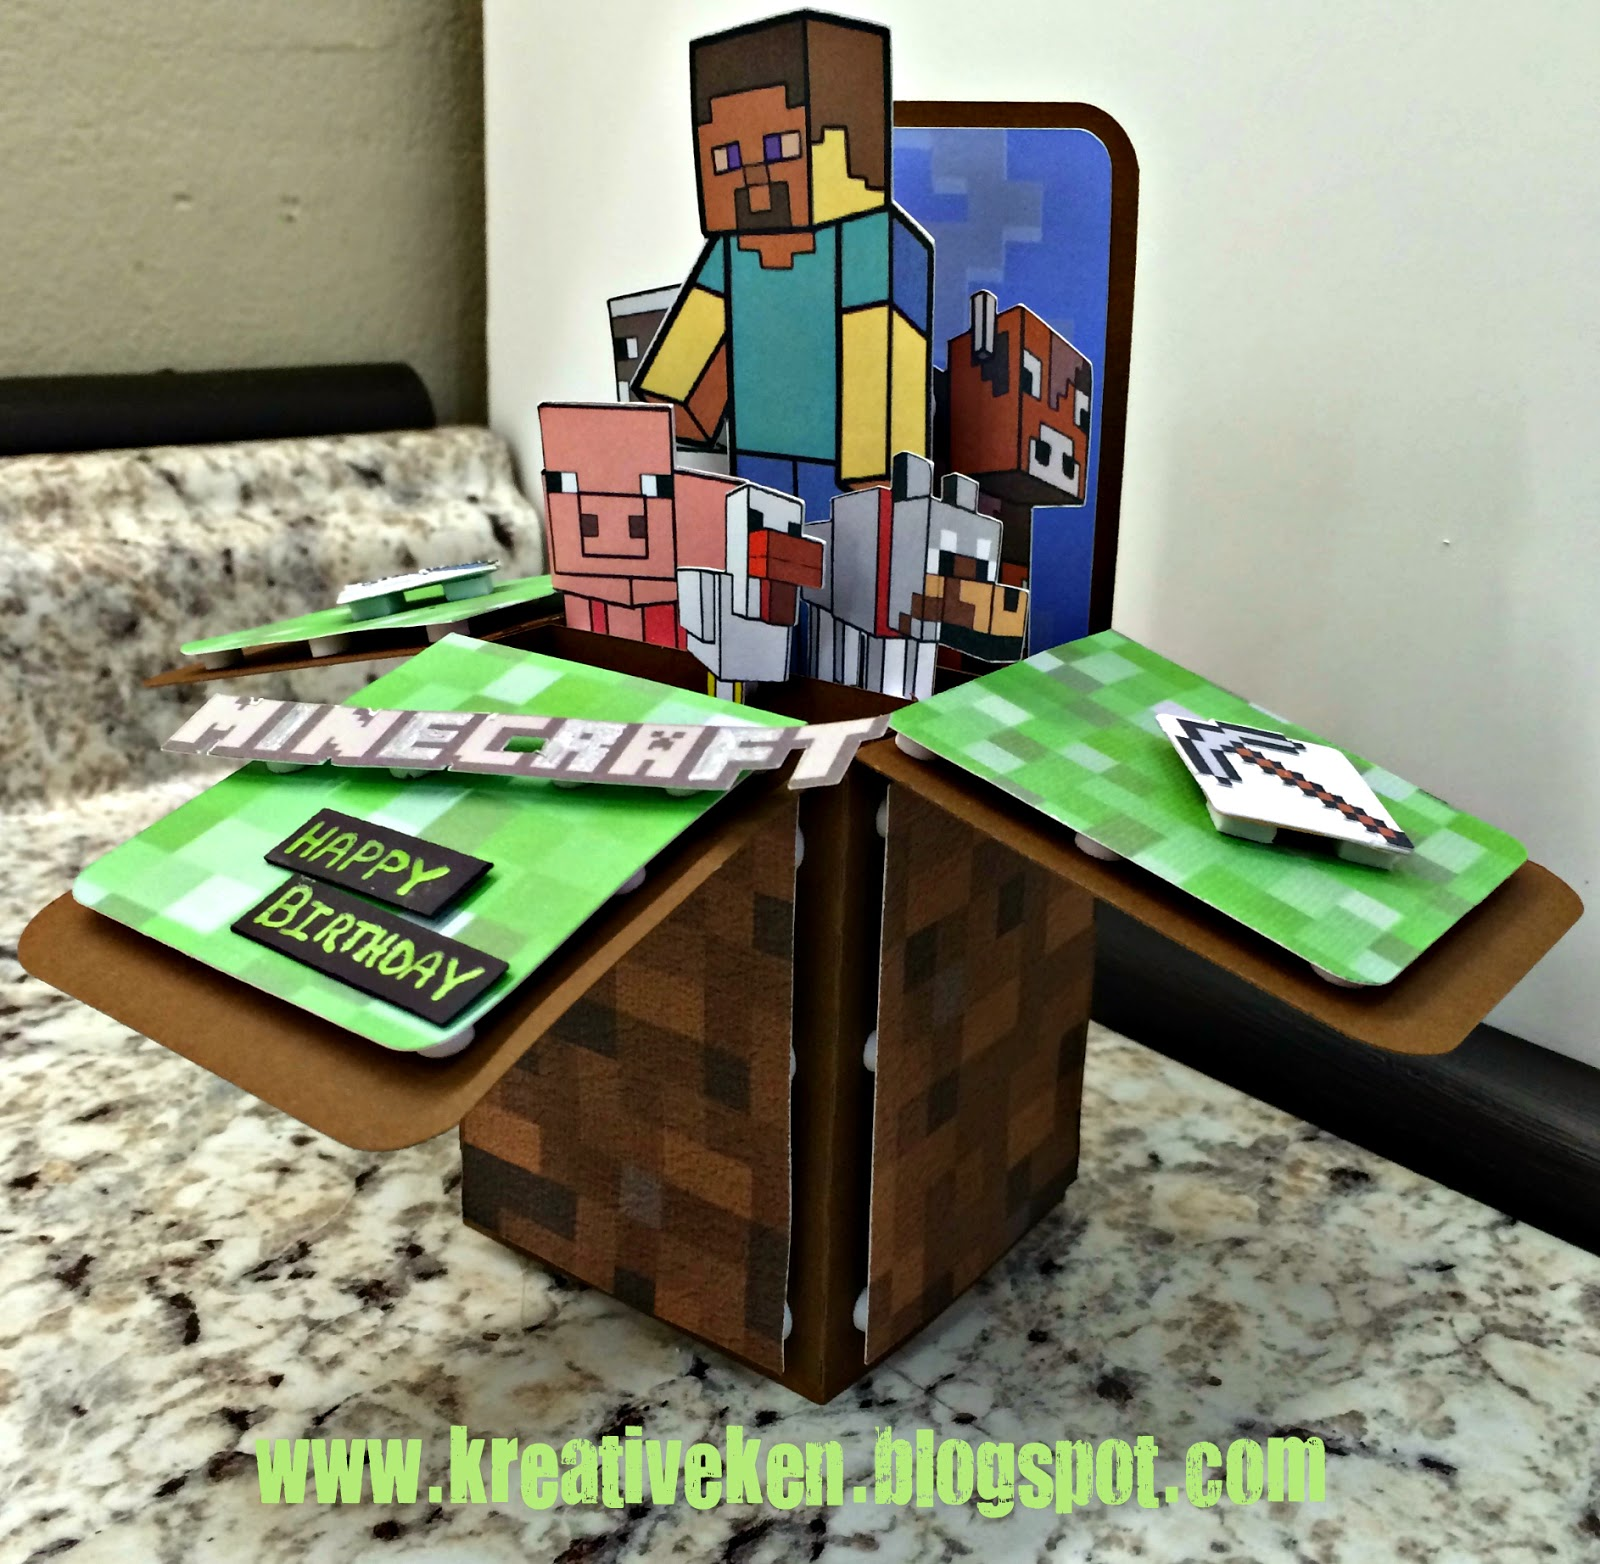 Minecraft birthday card kens kreations minecraft birthday card bookmarktalkfo Image collections